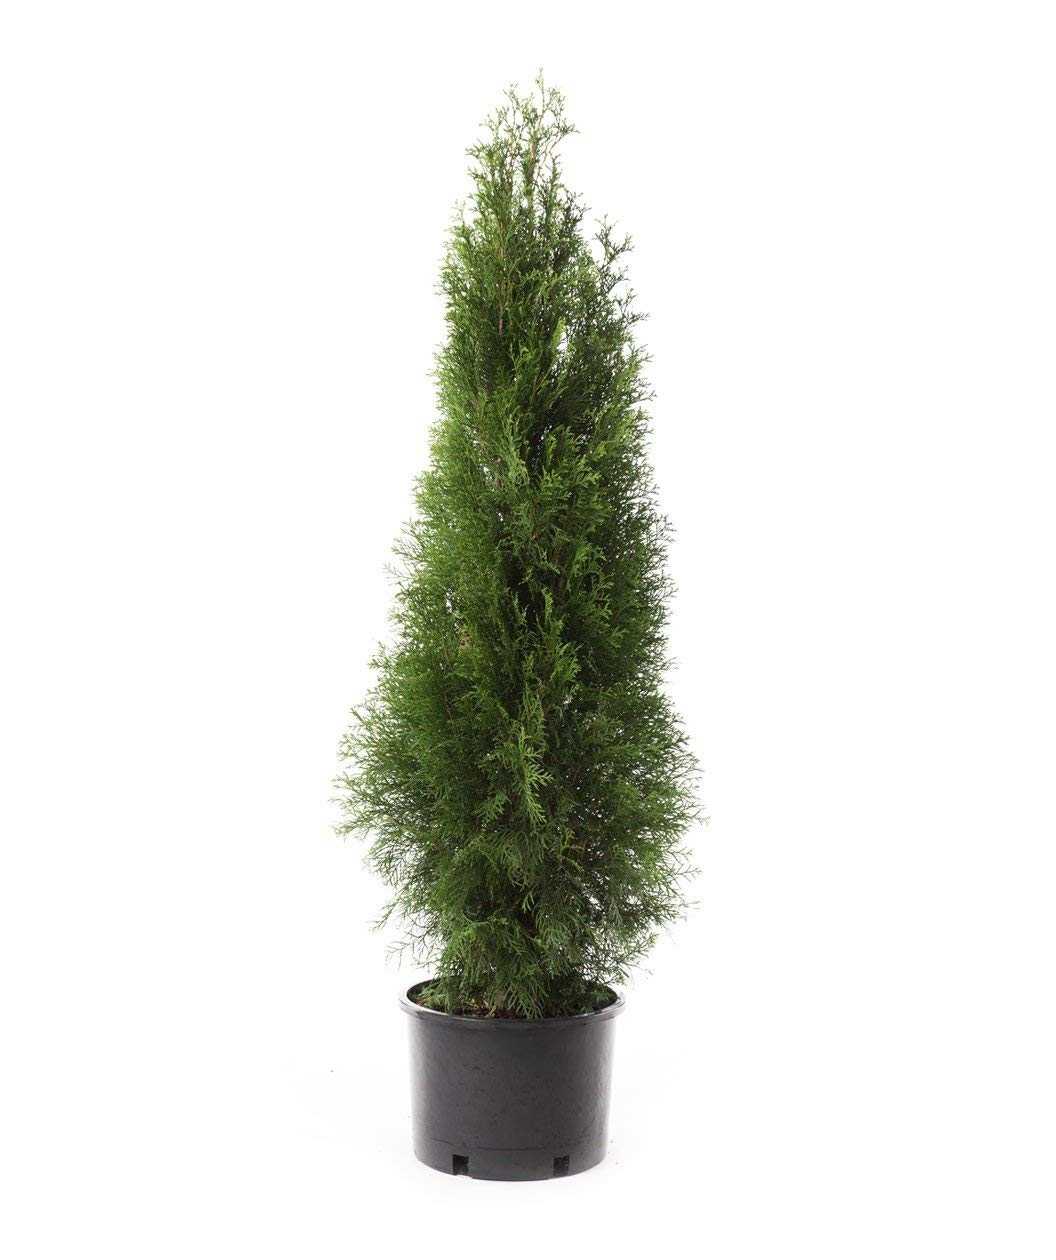 Thuja Yellow Ribbon Height Cheap Emerald Green Arborvitae Price Find Emerald Green